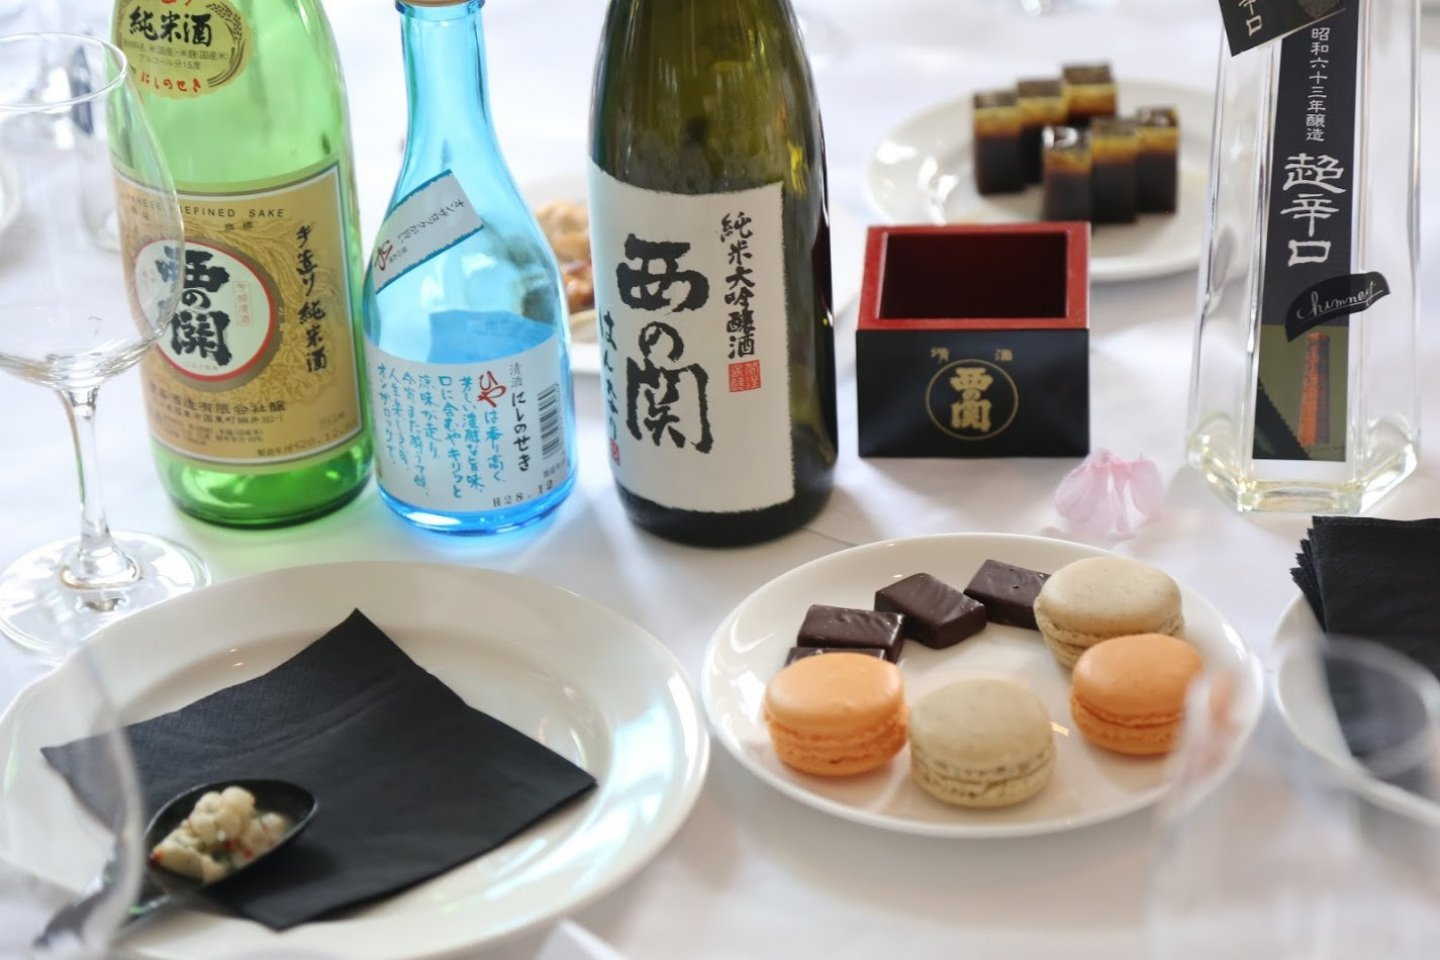 A selection of sake and sweets